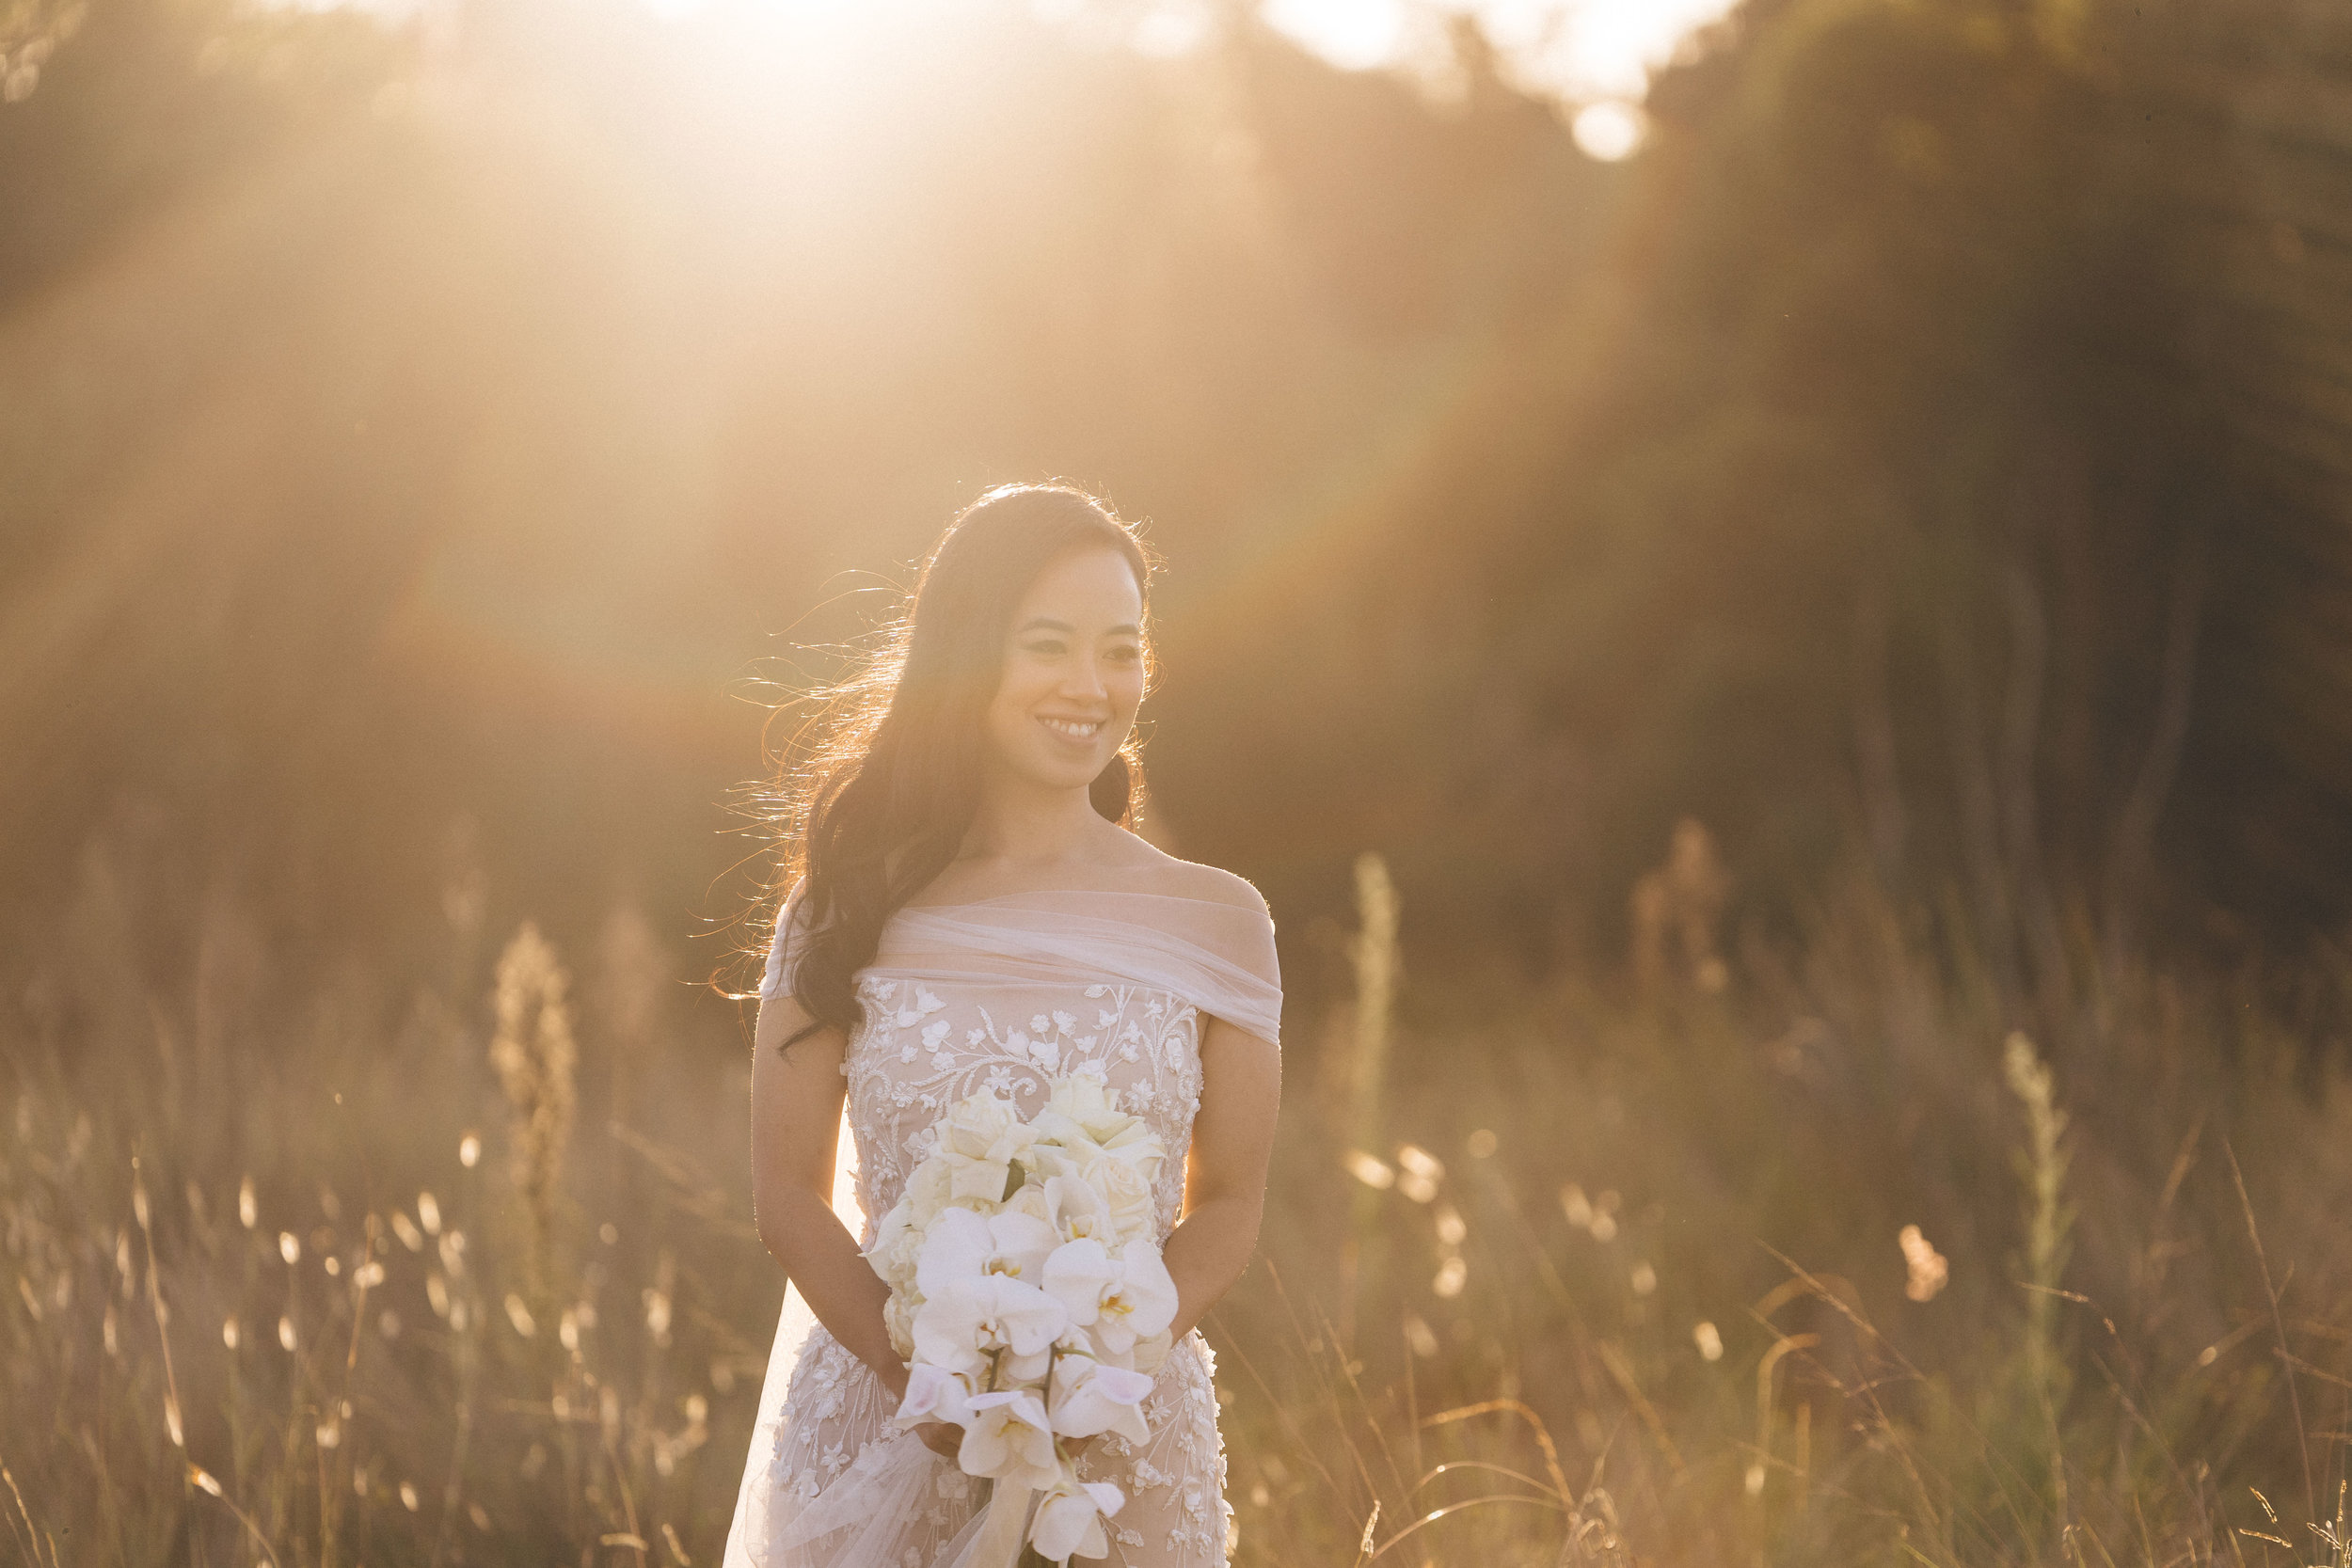 Ann Marie Yuen Photography - PREVIEW ONLY - 0005.jpg